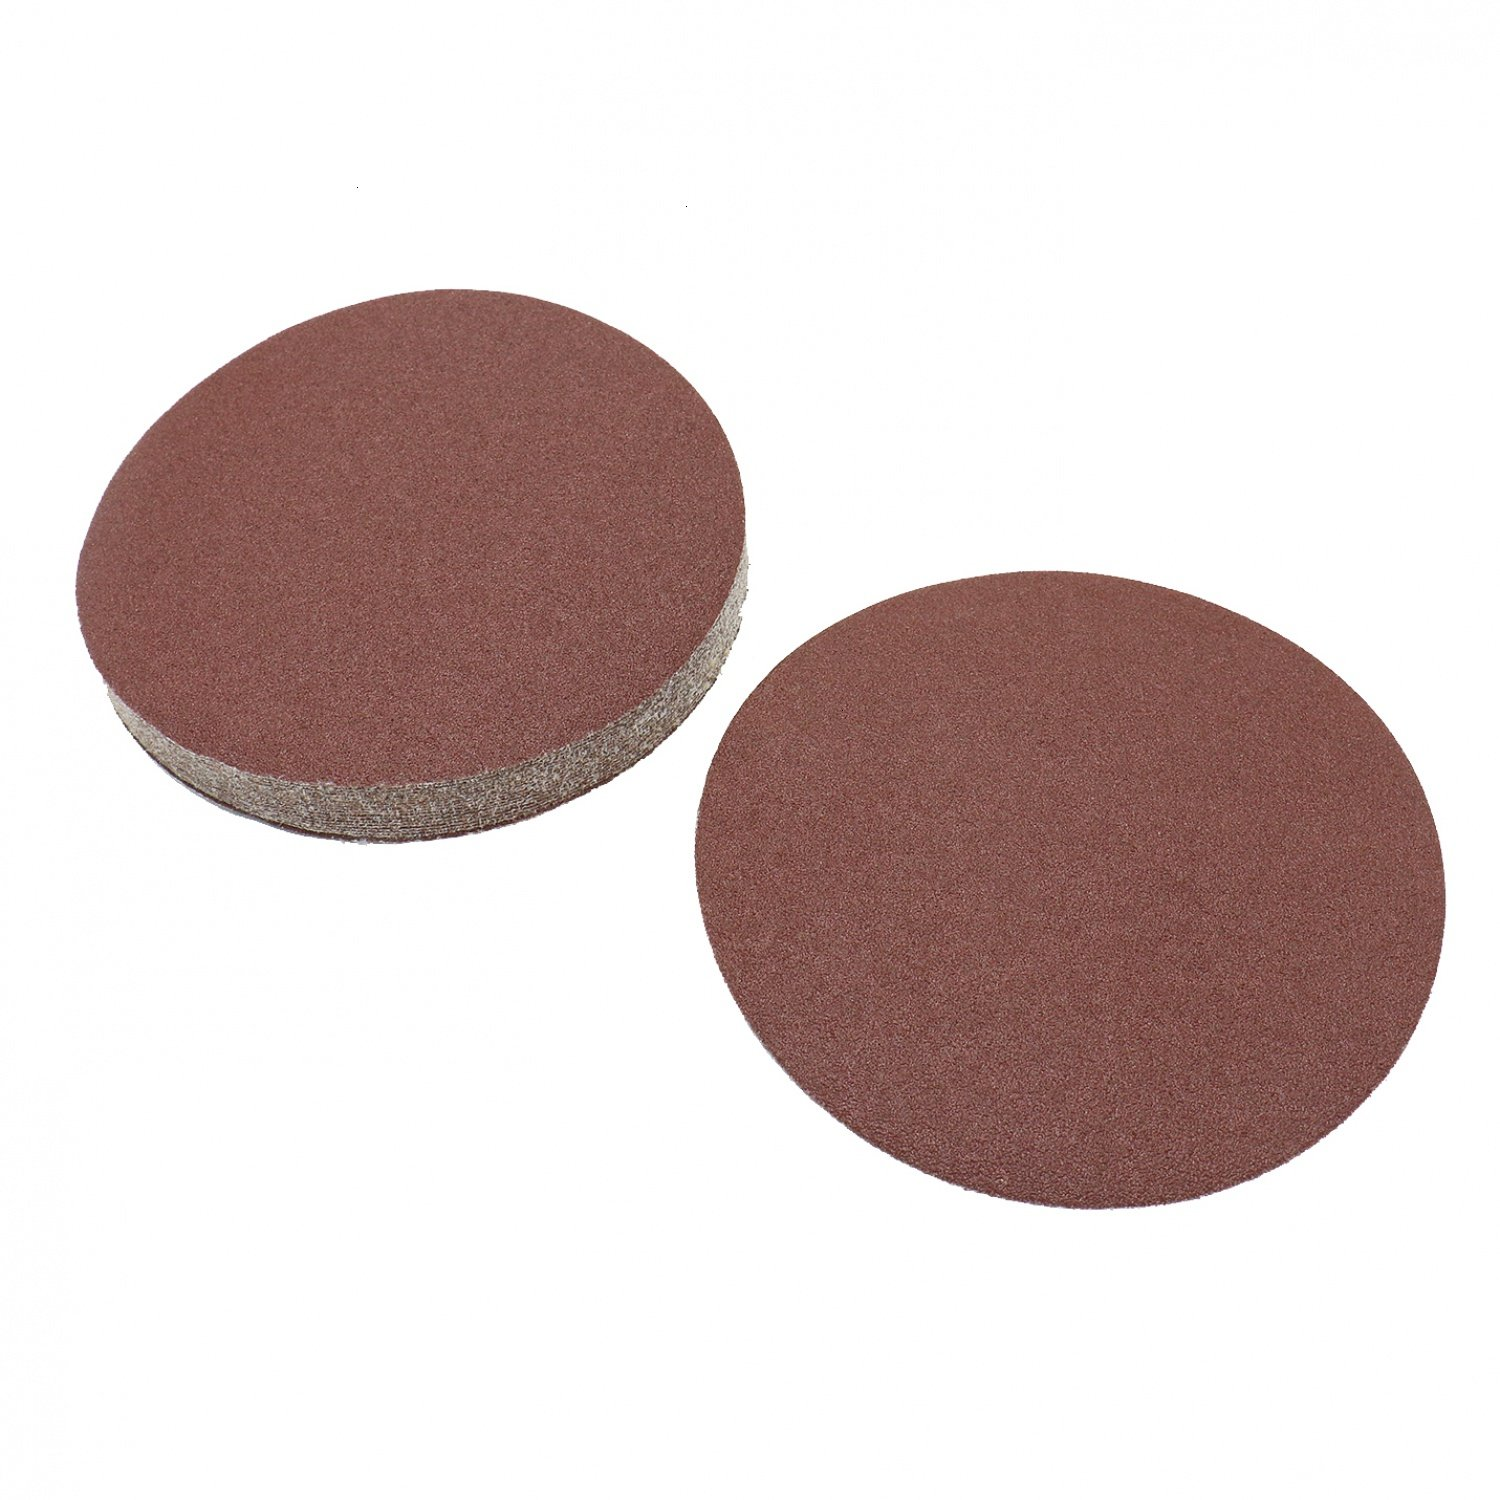 Buorsa 20 Pcs 7 Inch Heavy Duty Adhesive Sticky Back Tabbed Sanding Discs Dremel Sanding Discs Pad Kit For Cleaning and Polishing